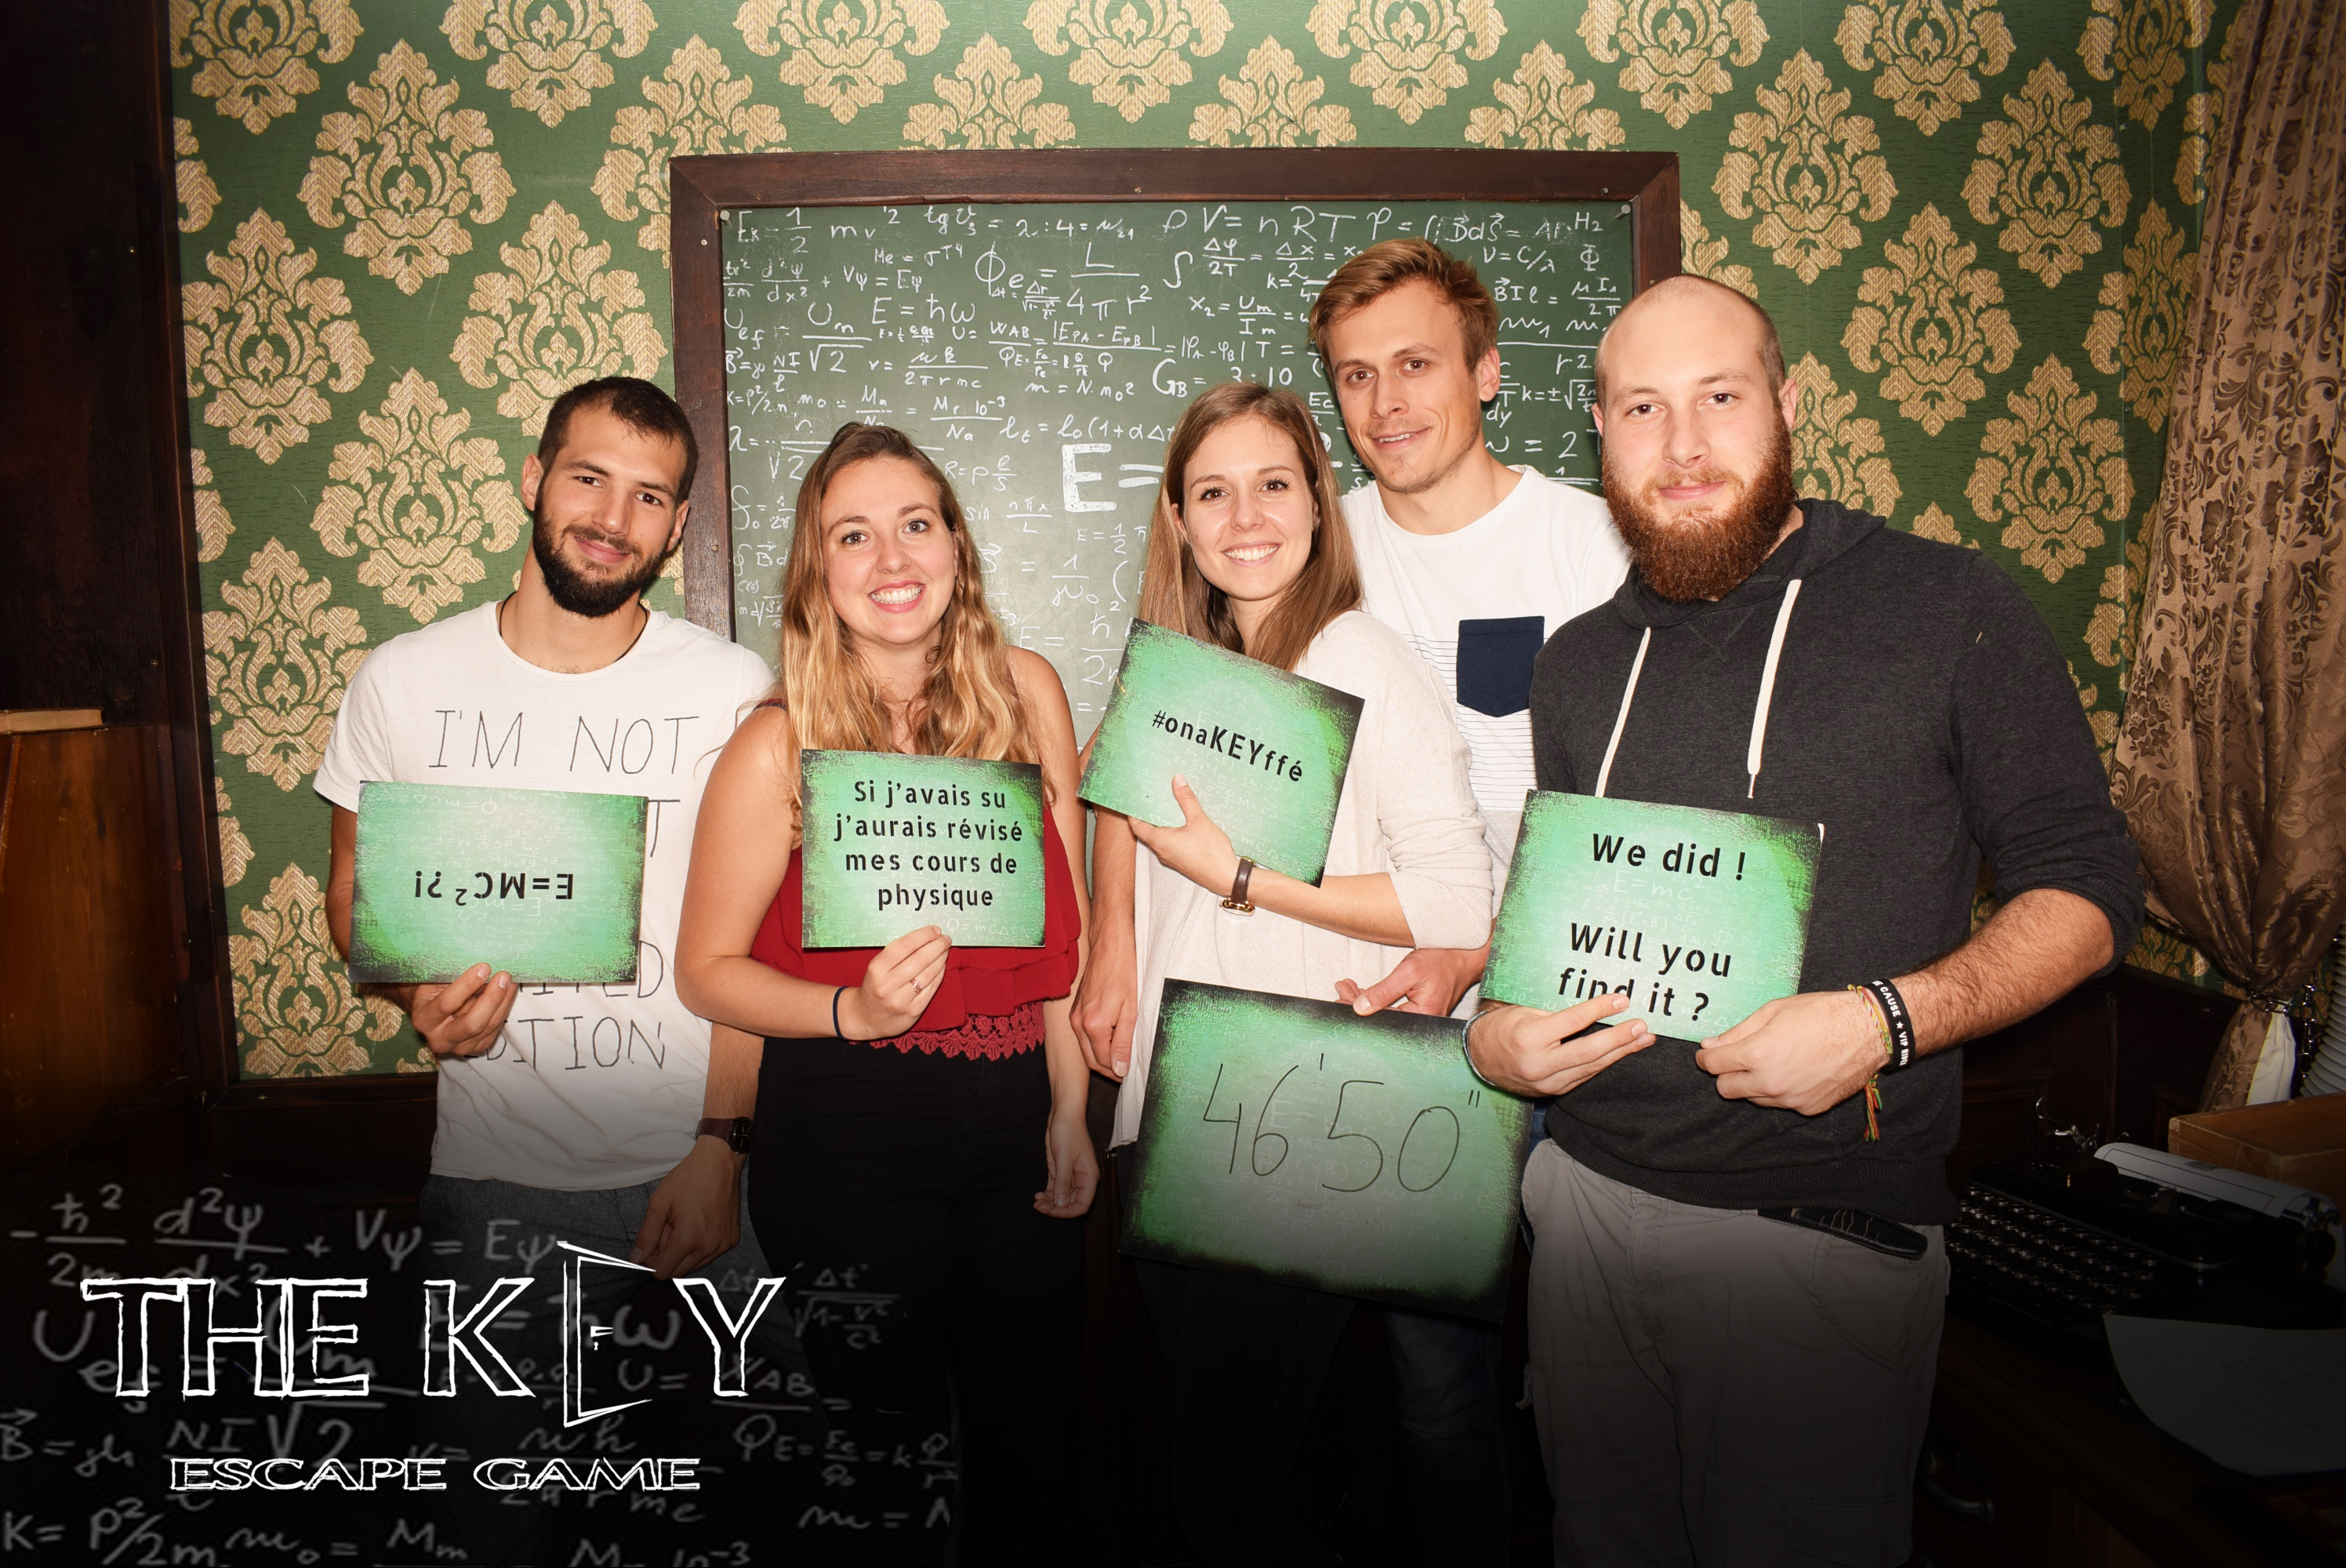 Best Escape Game Lausanne